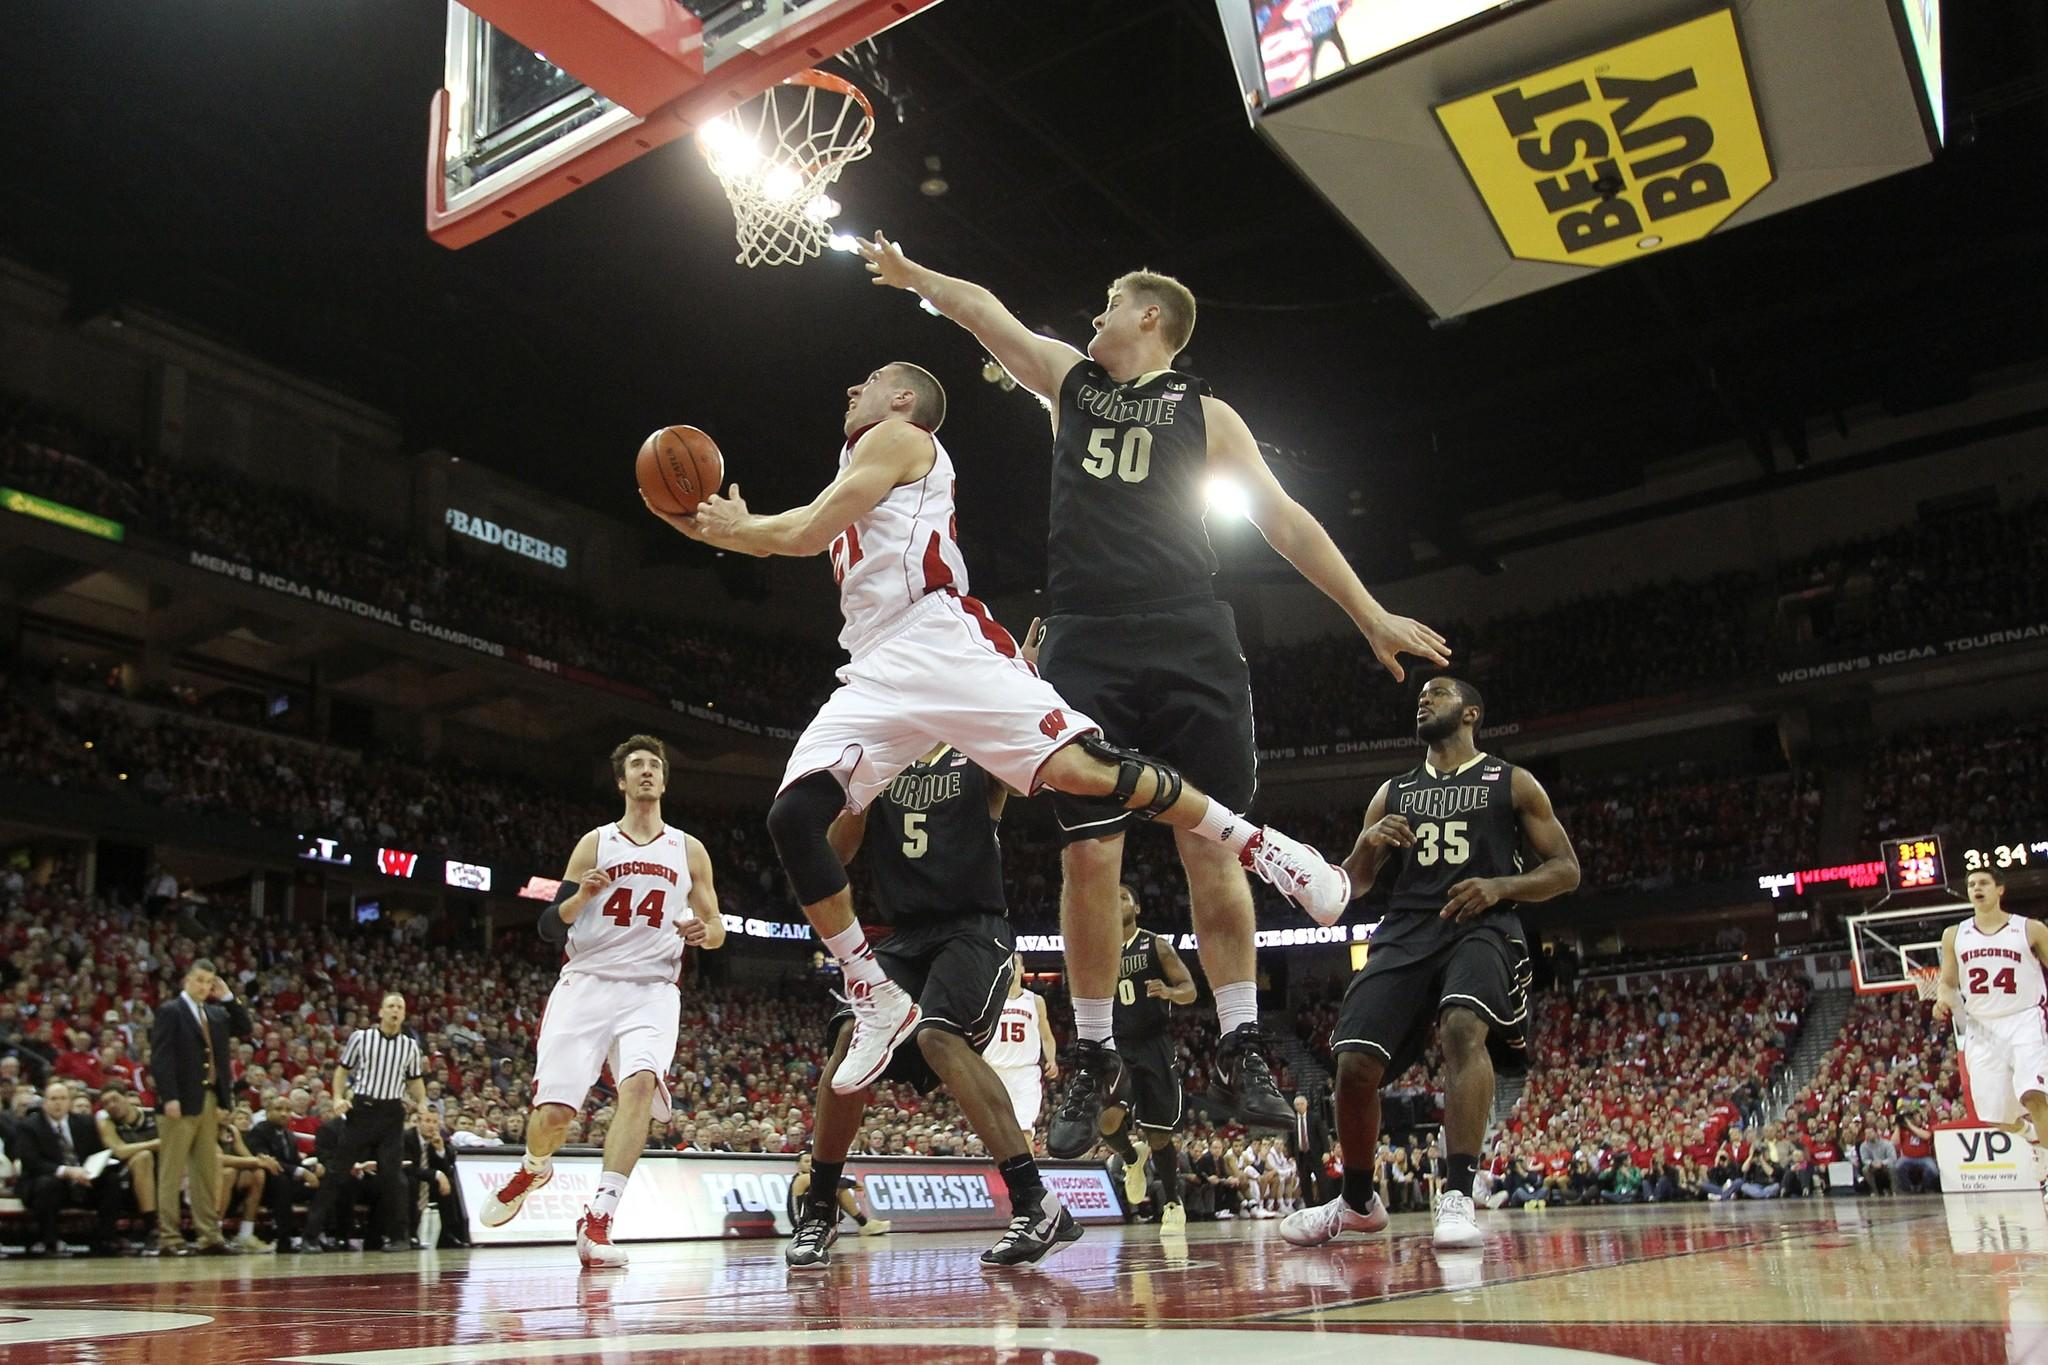 Wisconsin's Josh Gasser drives to the hoop during the first half of play against Purdue.